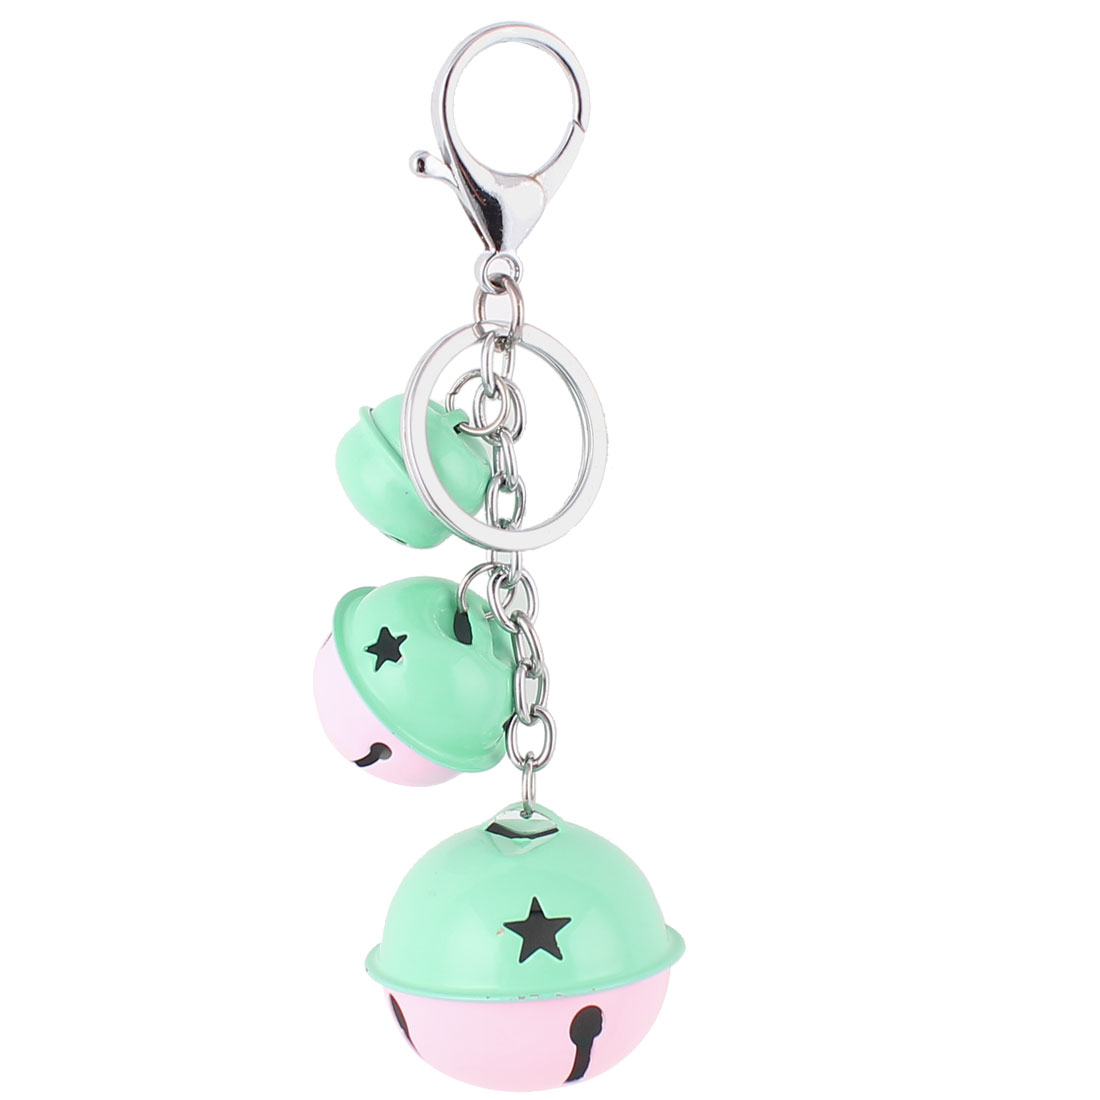 Bells Pendant Swivel Lobster Clasp Keyring Keychain Key Chain Ring Pink Cyan